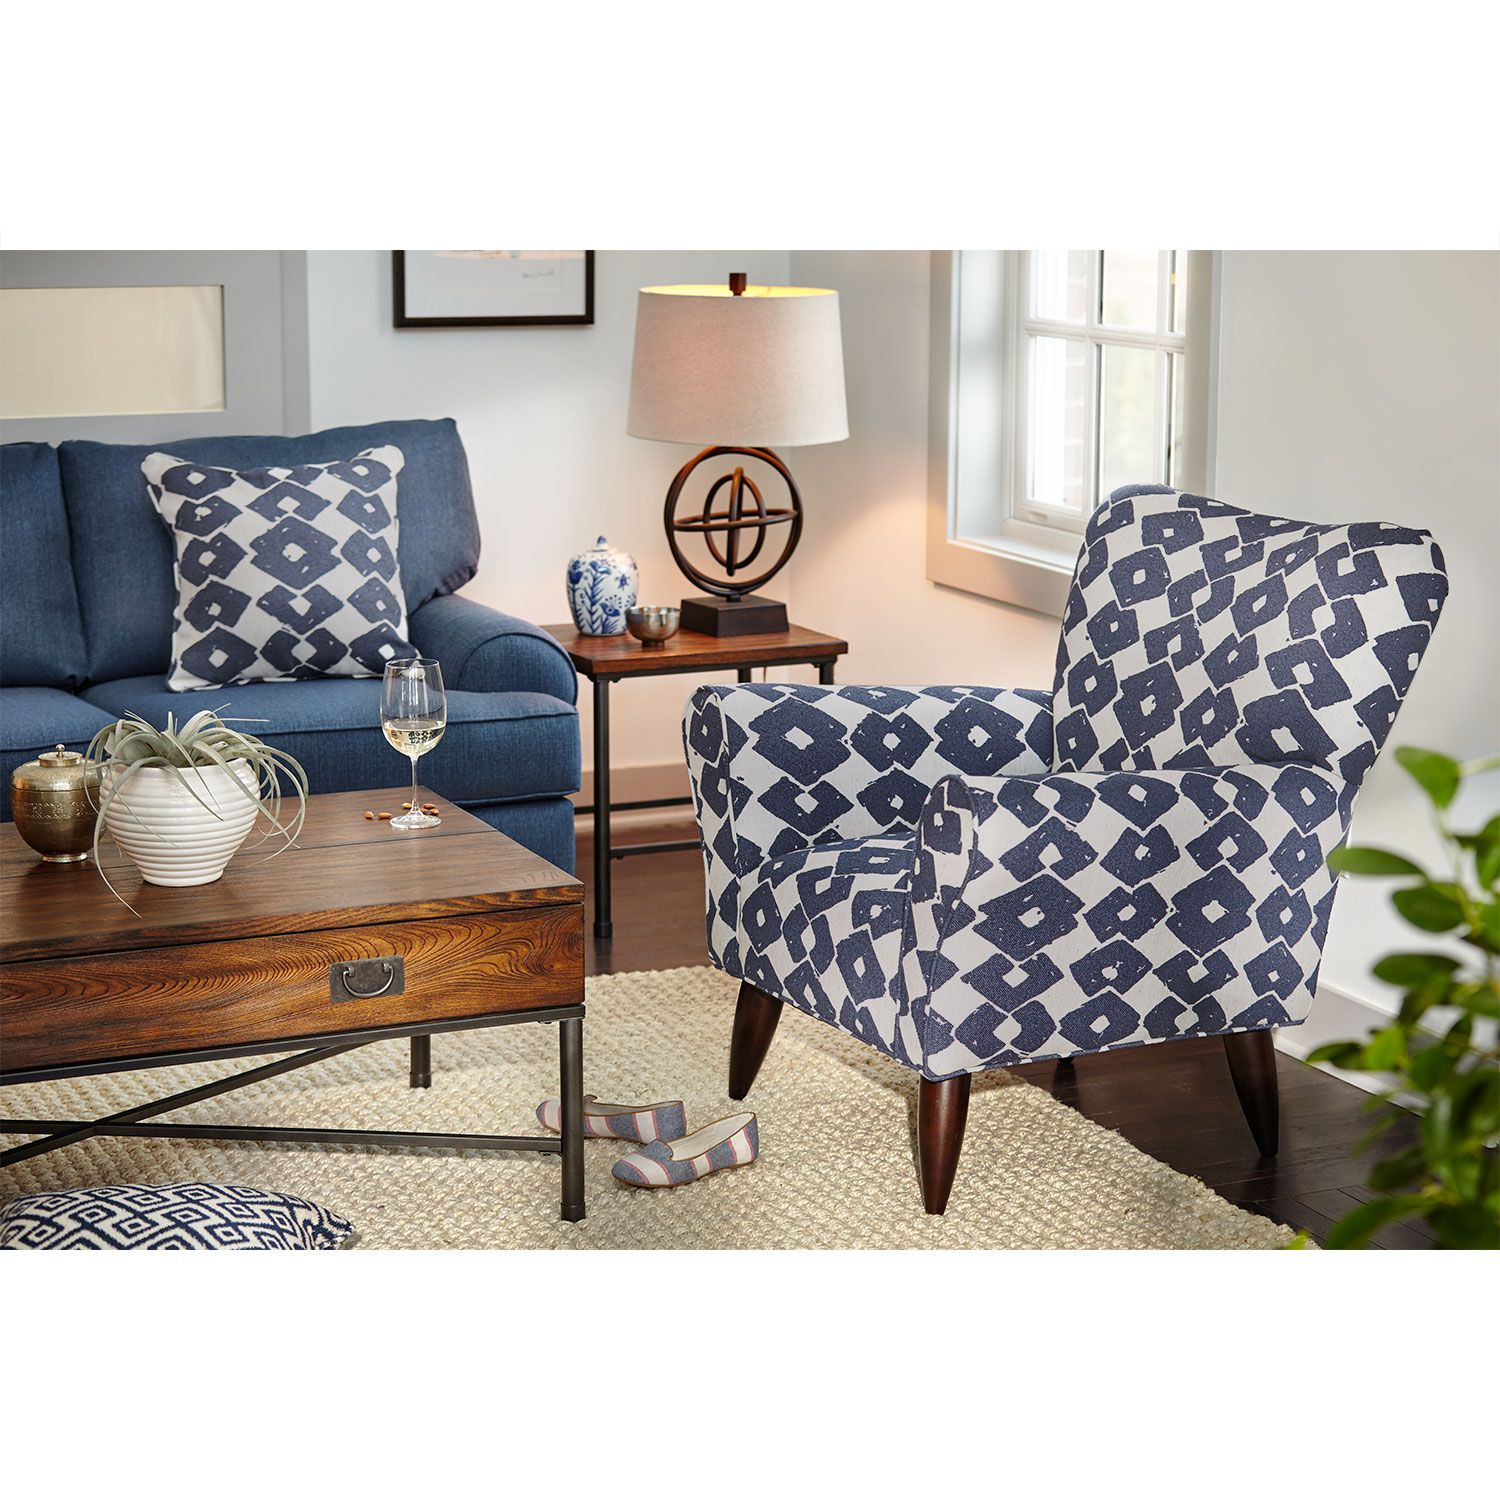 Beautiful Contemporary Accent Chairs For Living Room Goodworksfurniture In 2020 Arm Chairs Living Room Blue Accent Chairs Living Room Chairs #styles #of #living #room #chairs